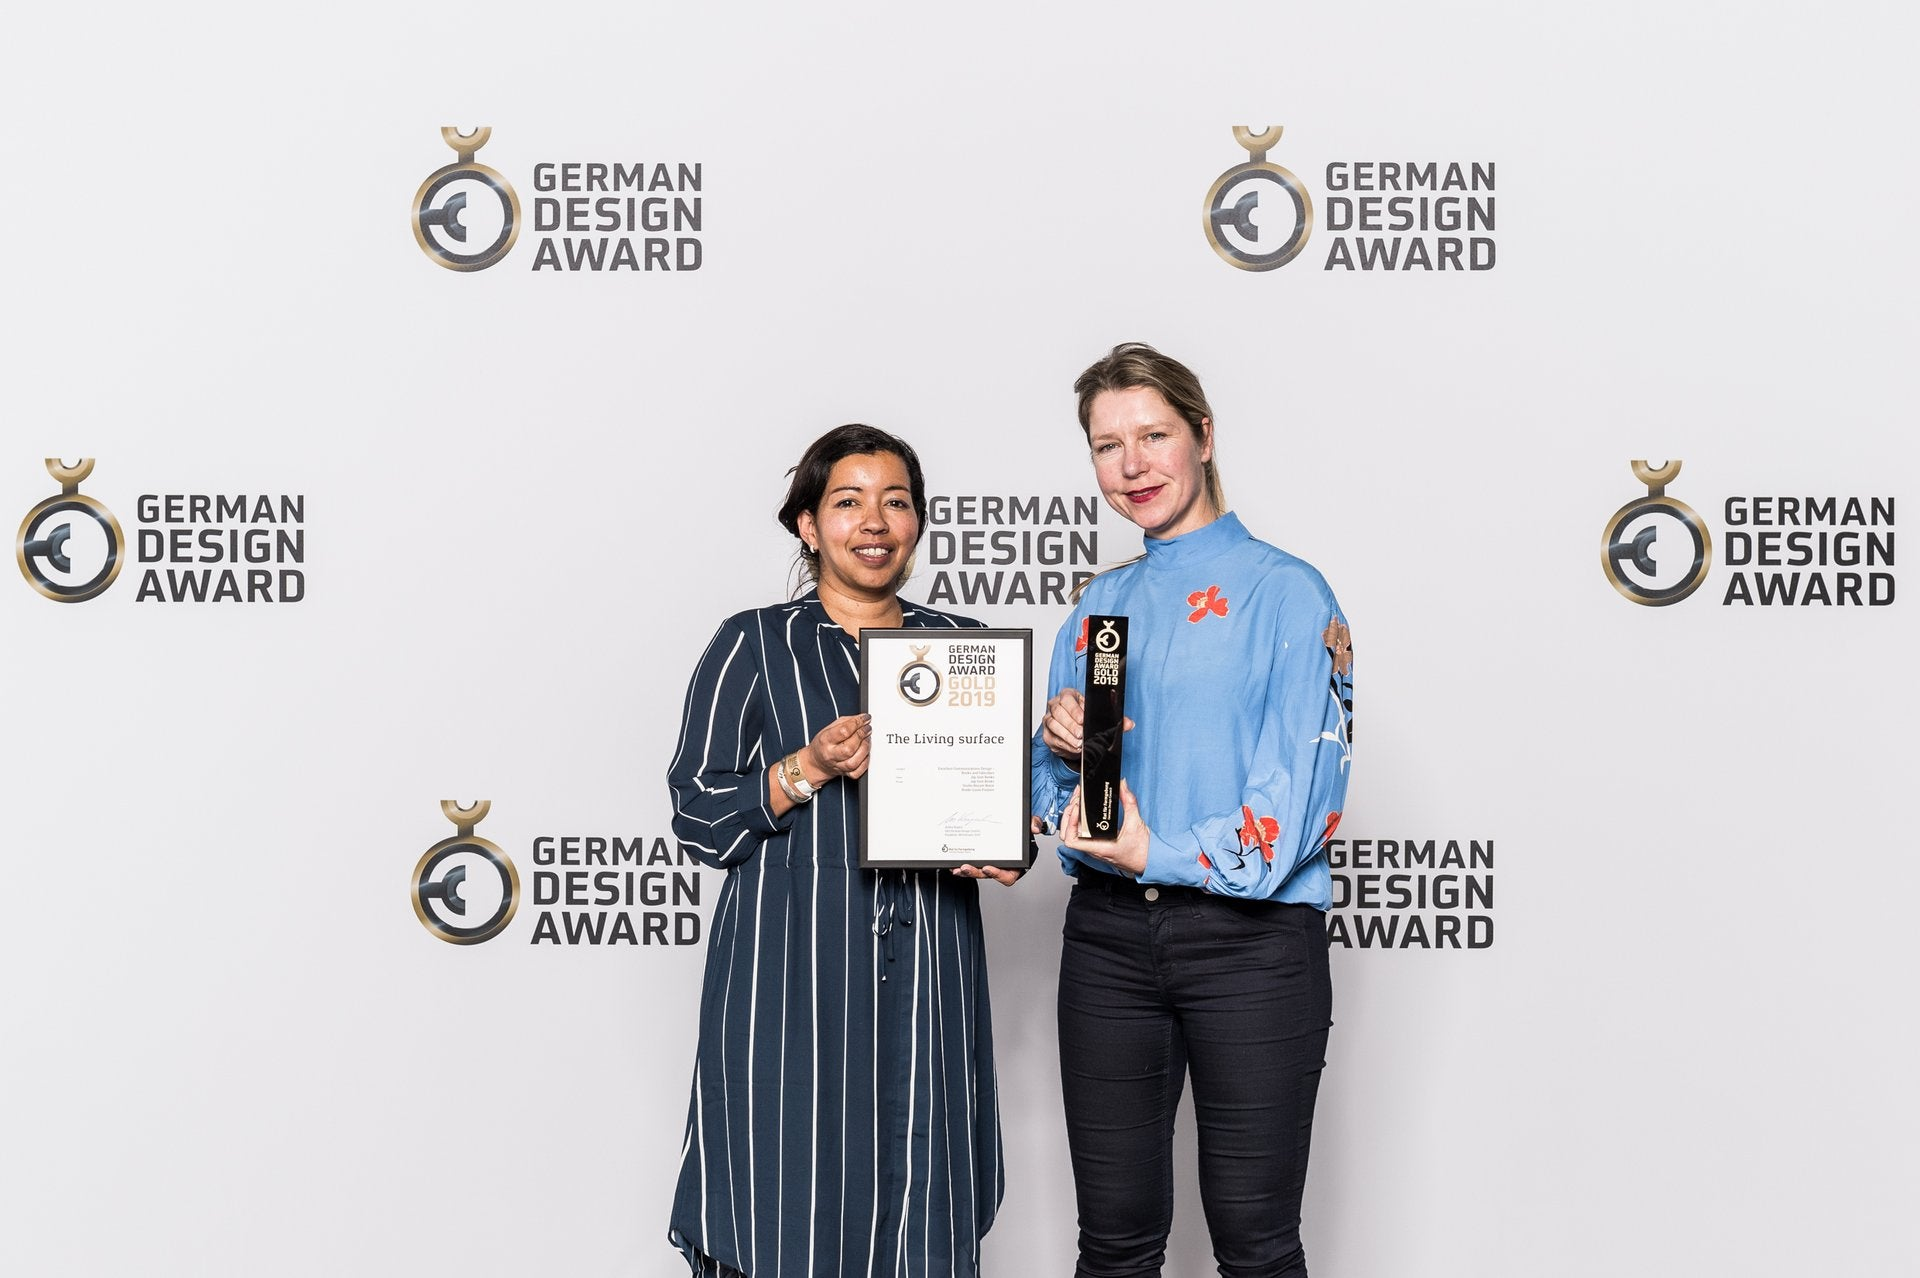 GOLD GERMAN DESIGN AWARD 2019 for The Living Surface